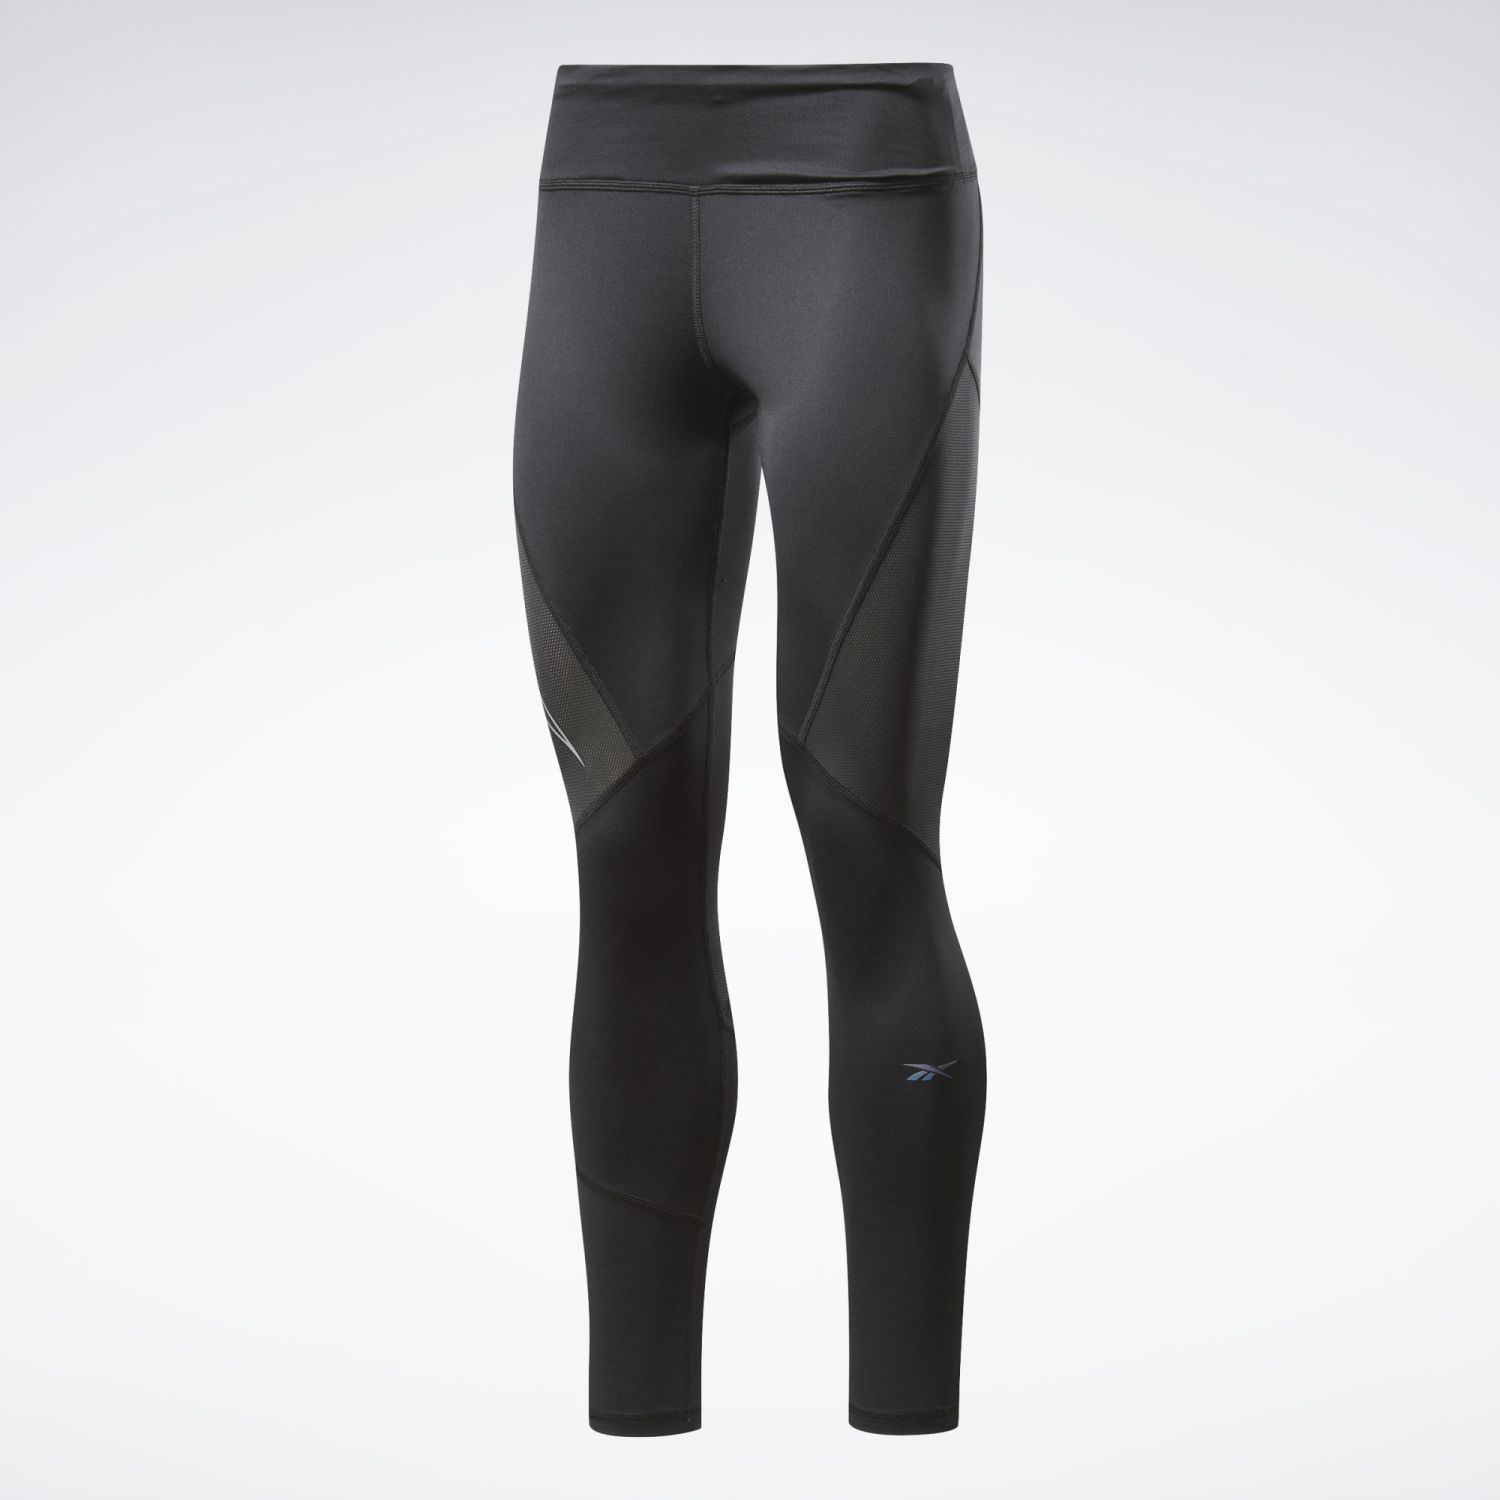 Reebok Osr Vector Tight Negro Leggings deportivos